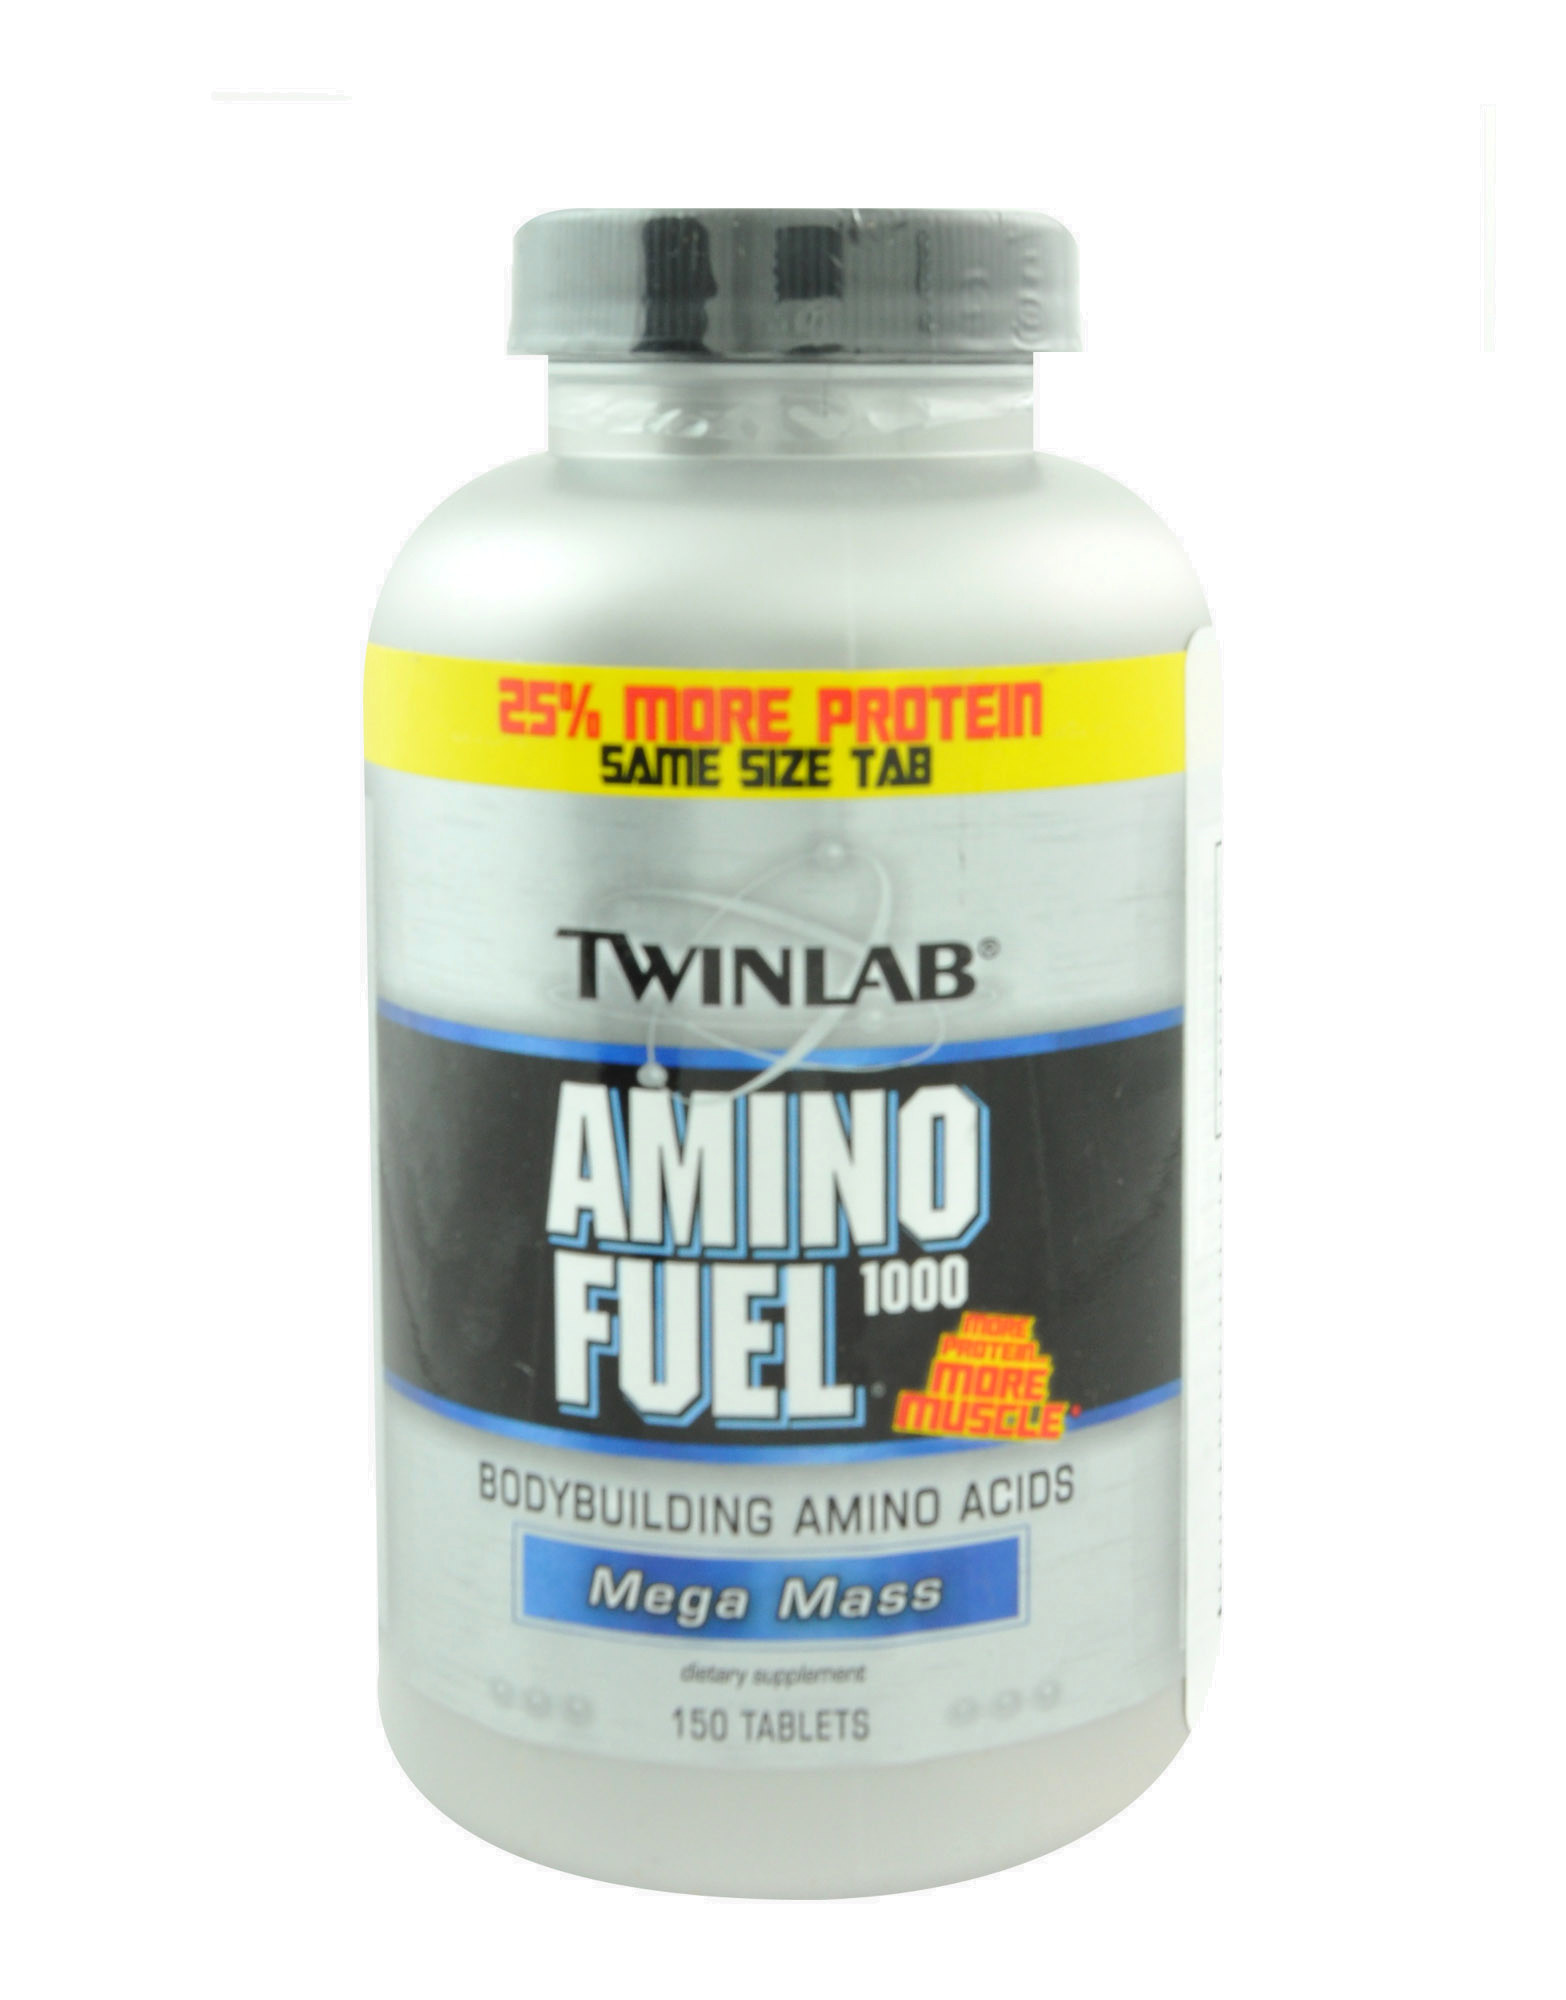 Amino Fuel 1000 by TWINLAB (150 tablets)